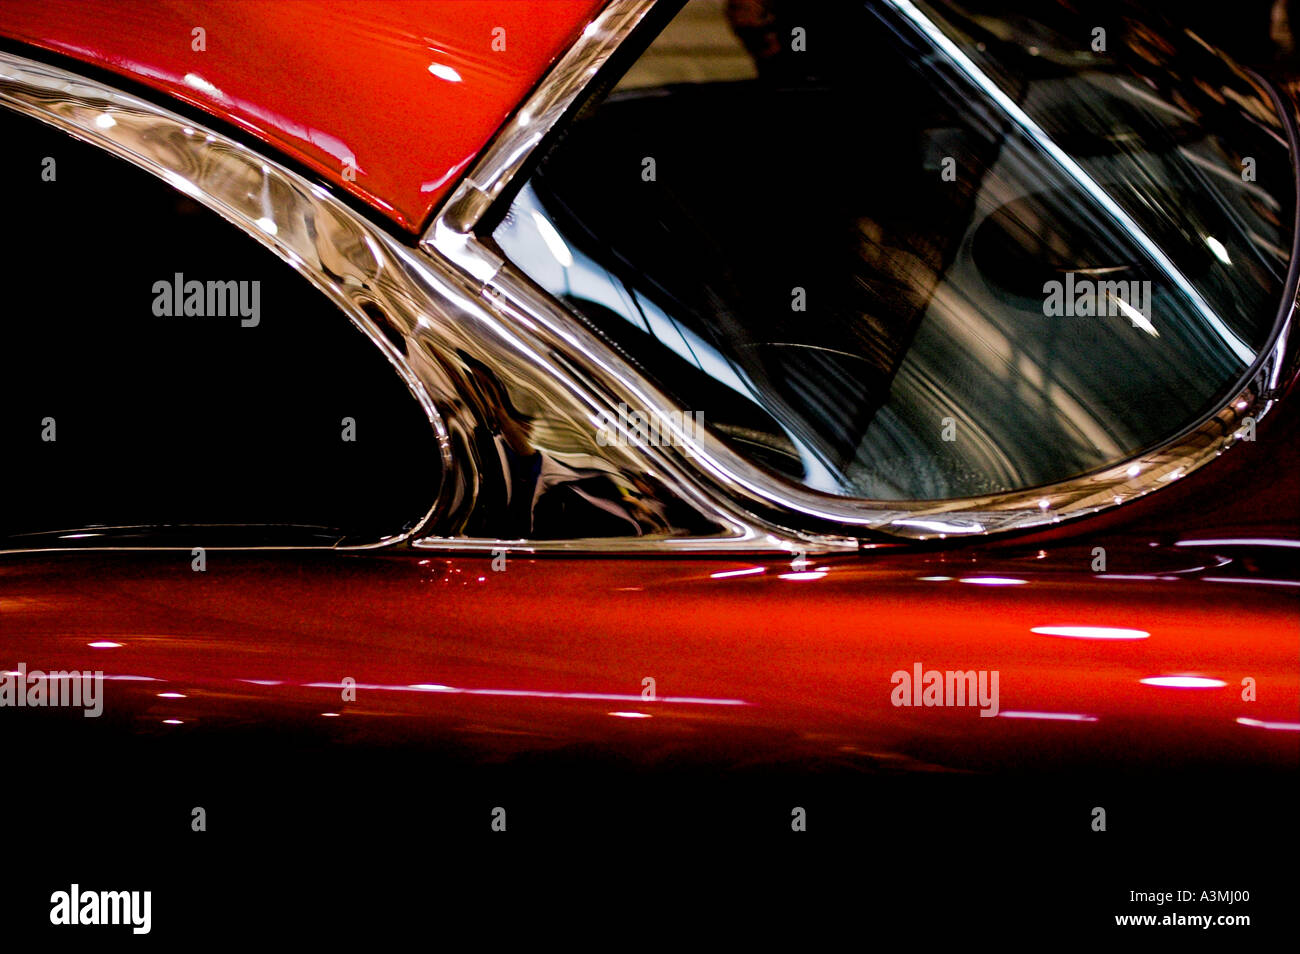 old collectible car show red shinny american usa - Stock Image